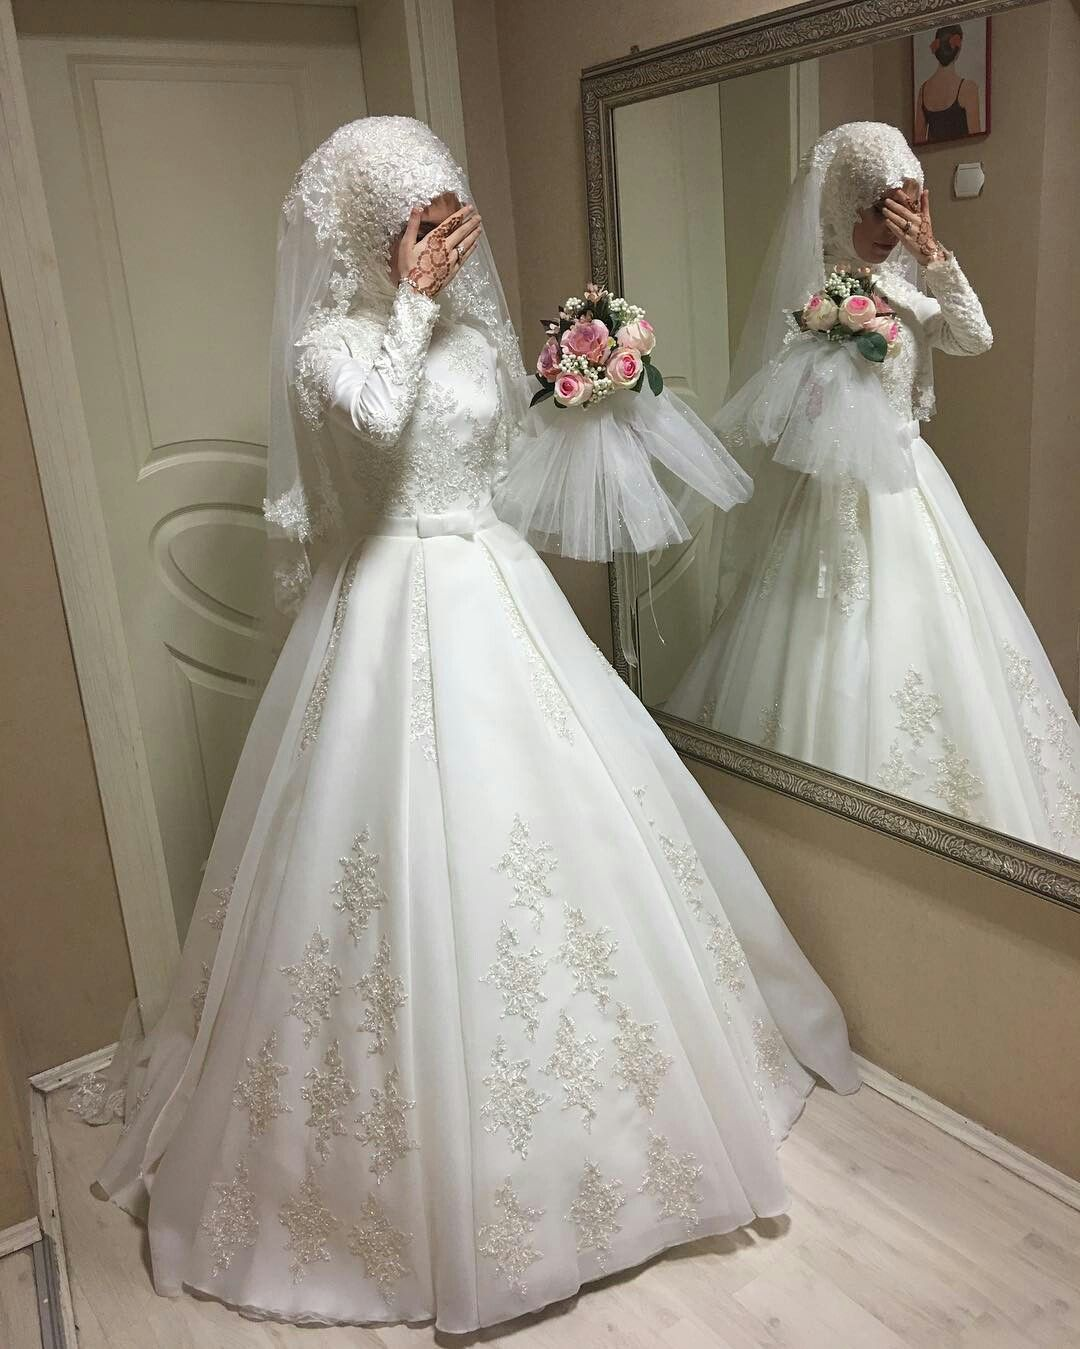 Wedding Gowns For Muslim Brides: Pinterest: @enchantressxo